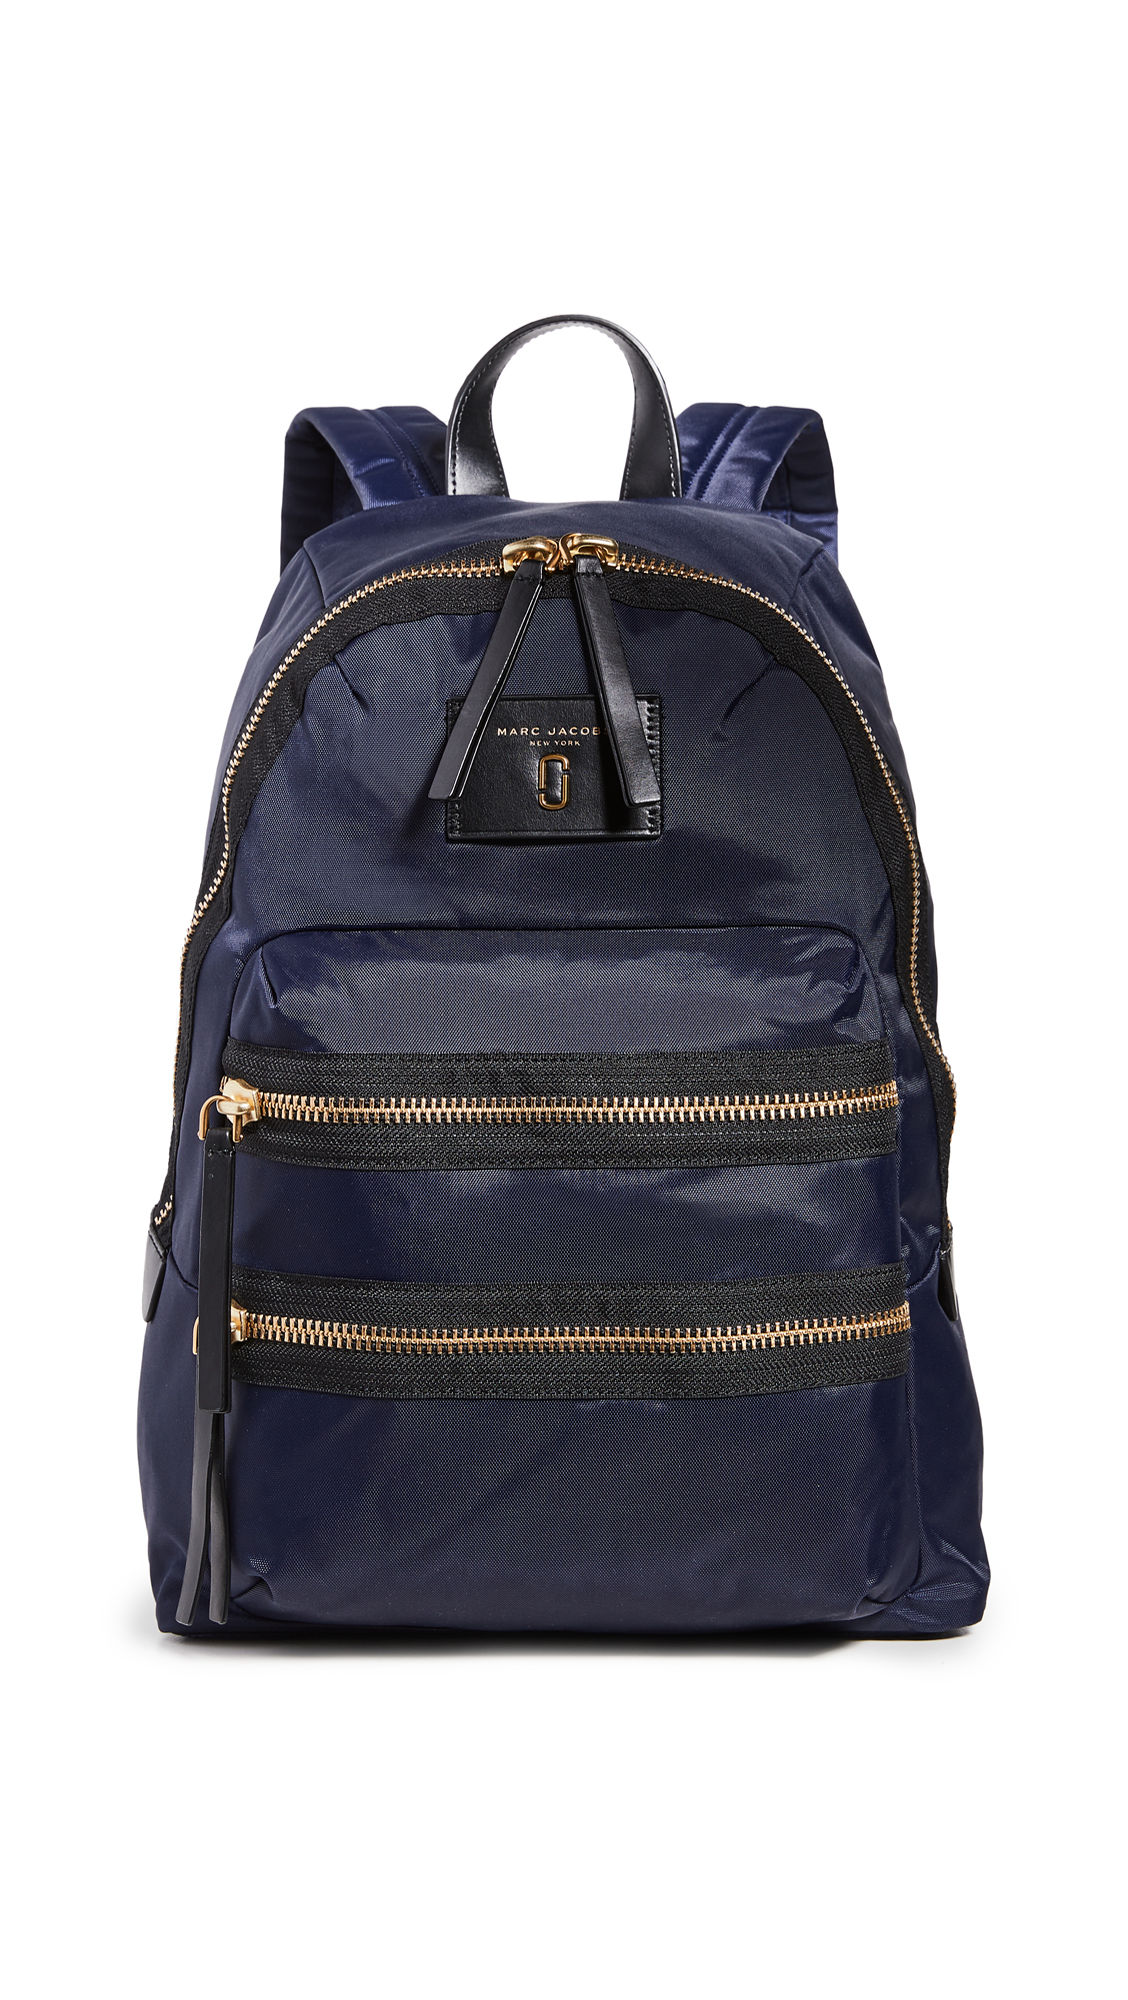 The Marc Jacobs Nylon Biker Backpack